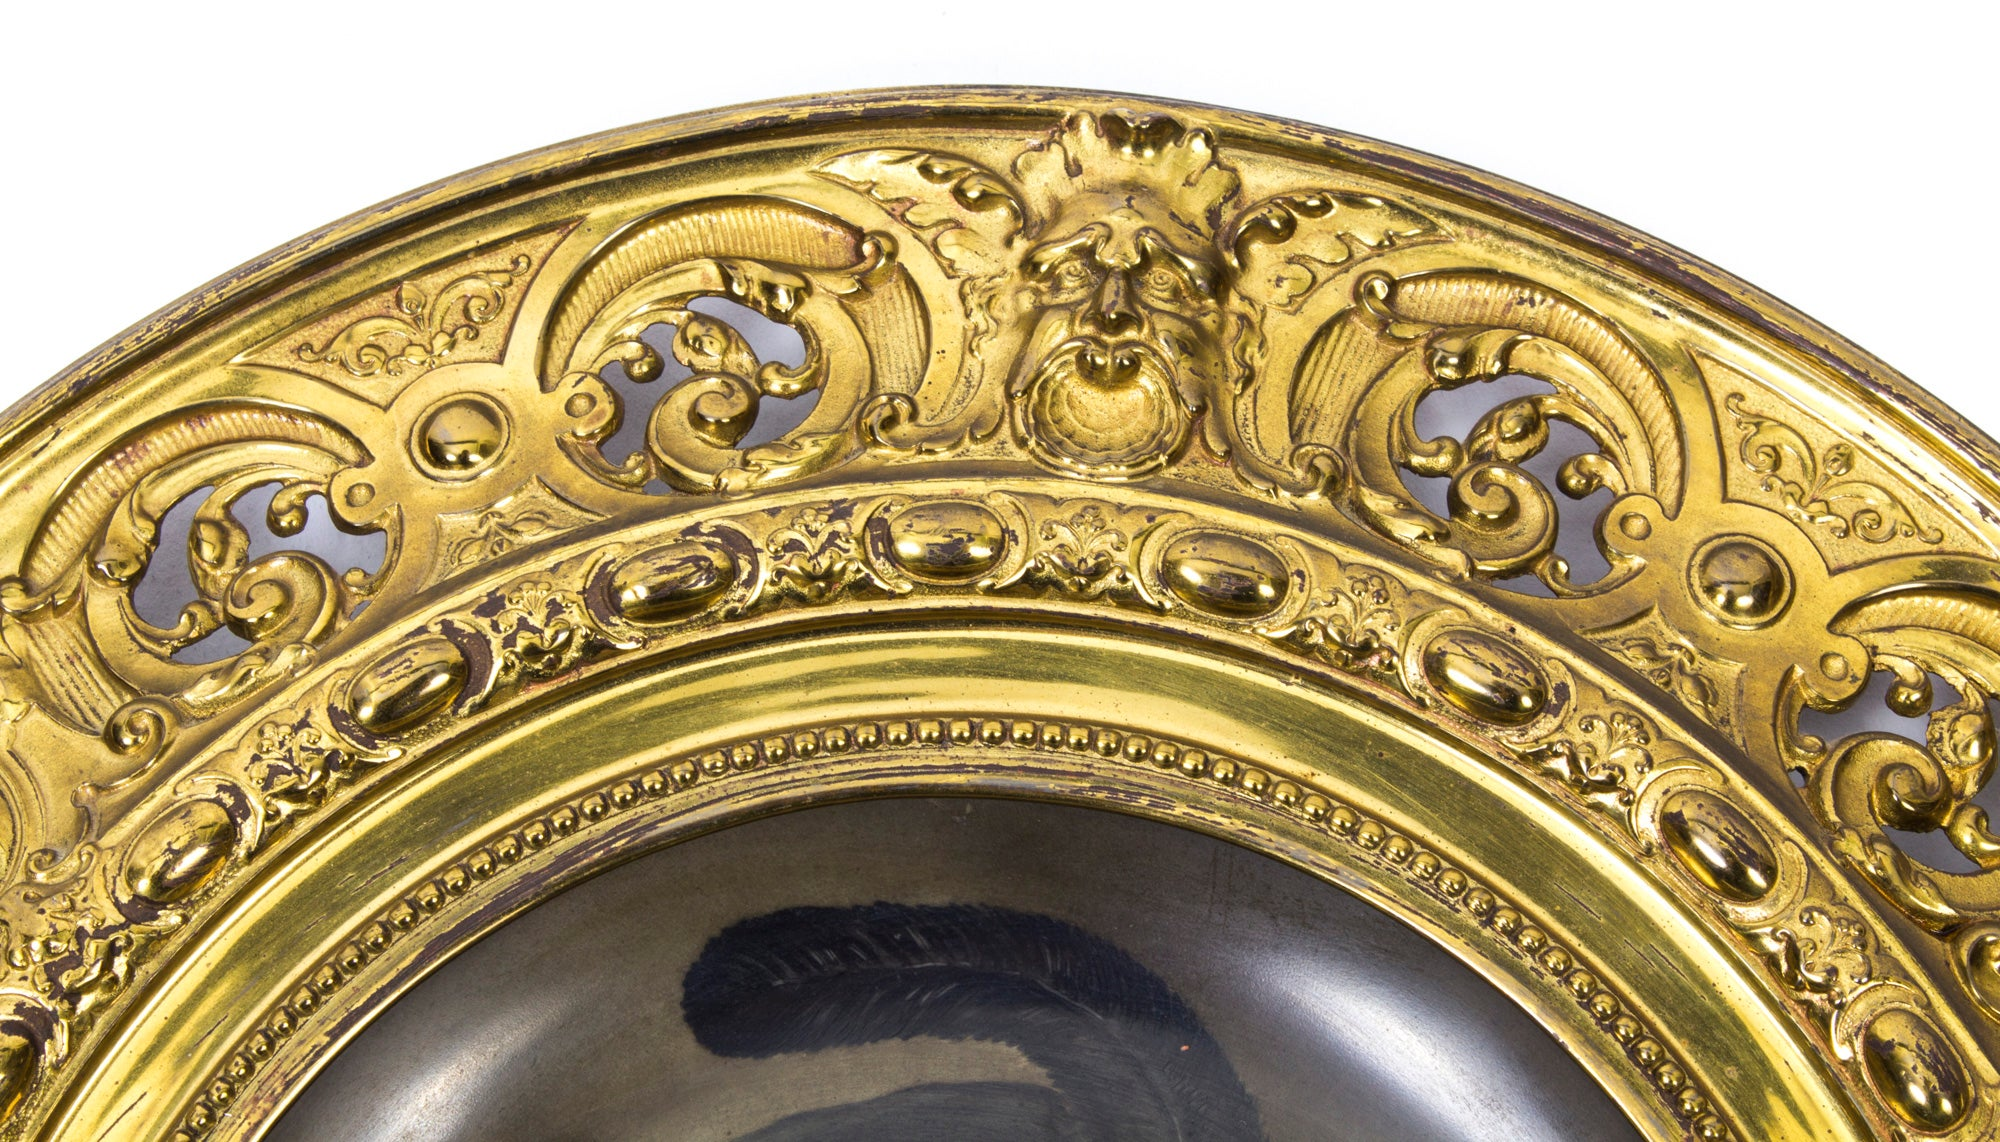 Antique Set of Four Dresden Porcelain Ormolu-Mounted Wall Plaques ...